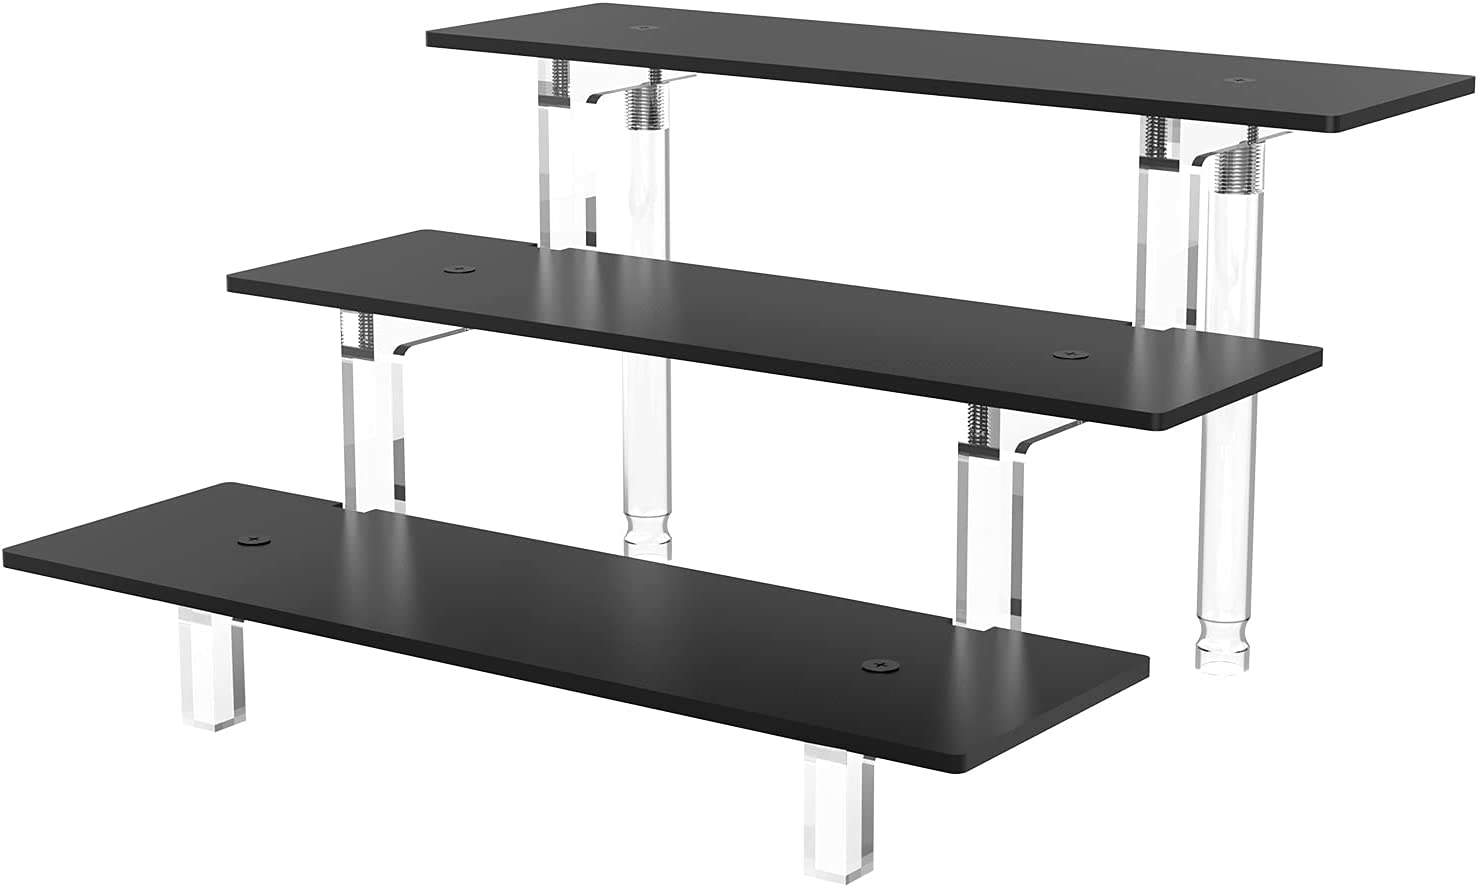 Price reduction Grarry Ranking TOP18 Acrylic Display Stands 3 Shelf Tier Riser